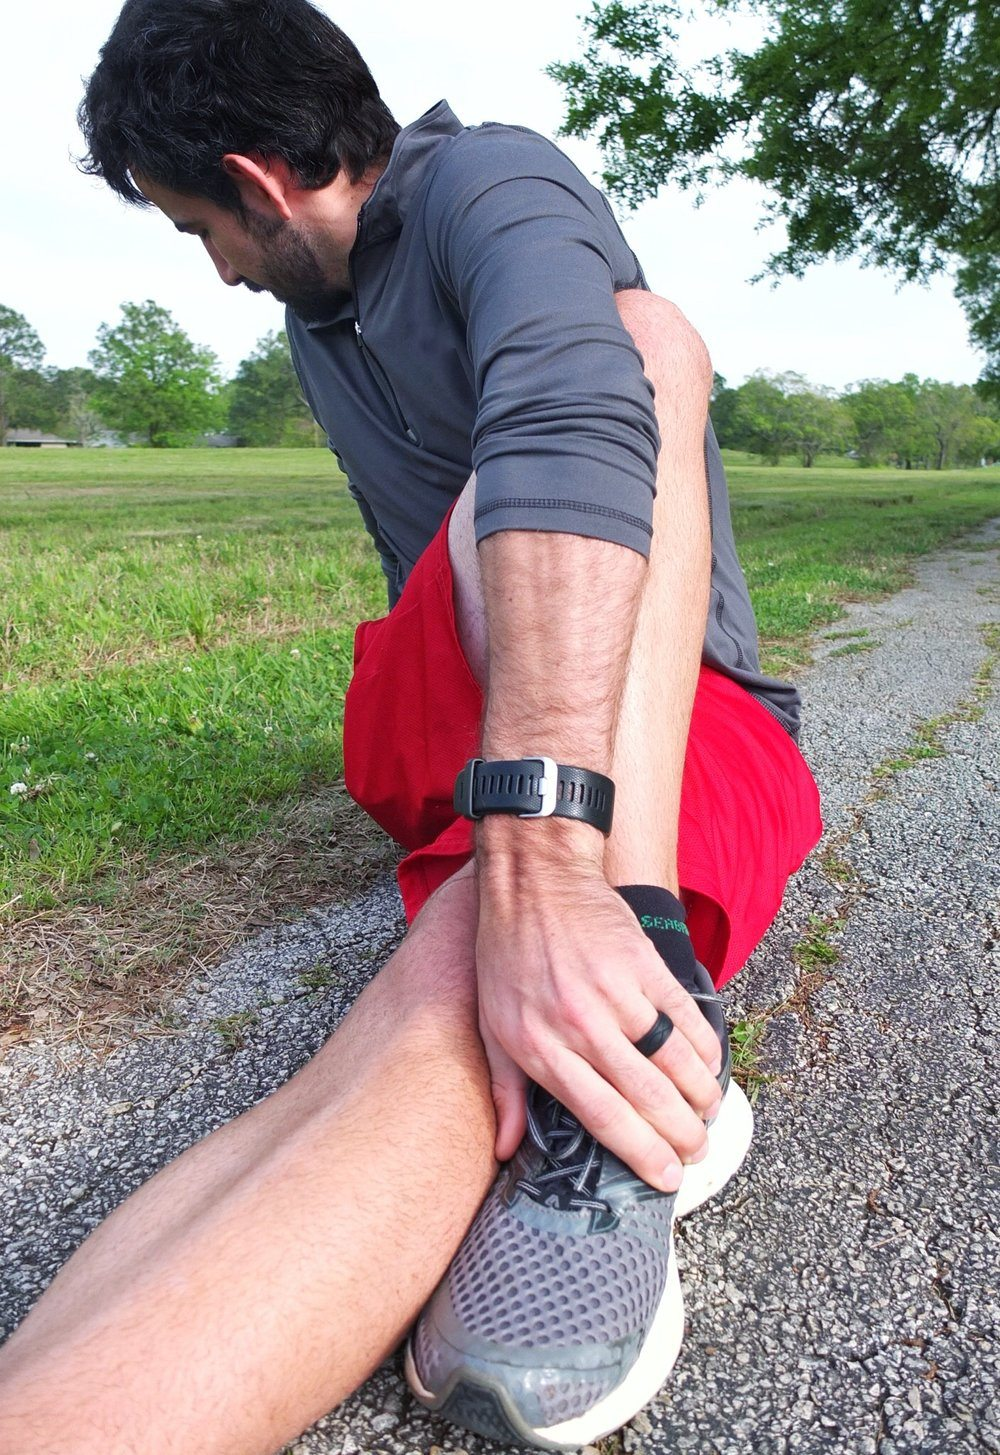 A how to prep for race day as a couple for a marathon, relay, or any other running event. With tips for stretching, Enso Rings, and carb loading.